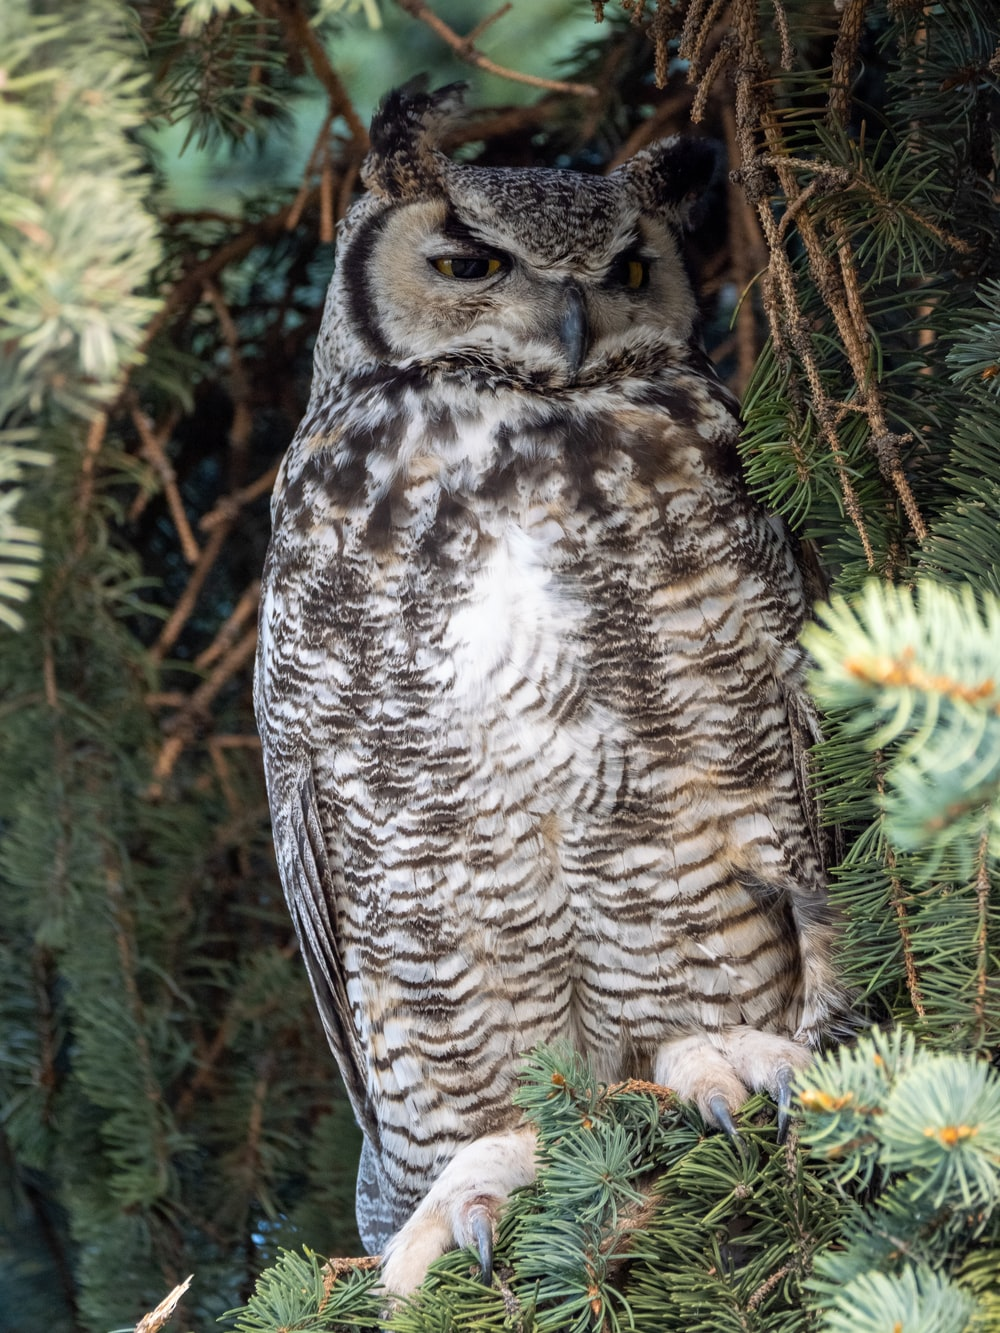 brown and white owl on brown tree branch during daytime